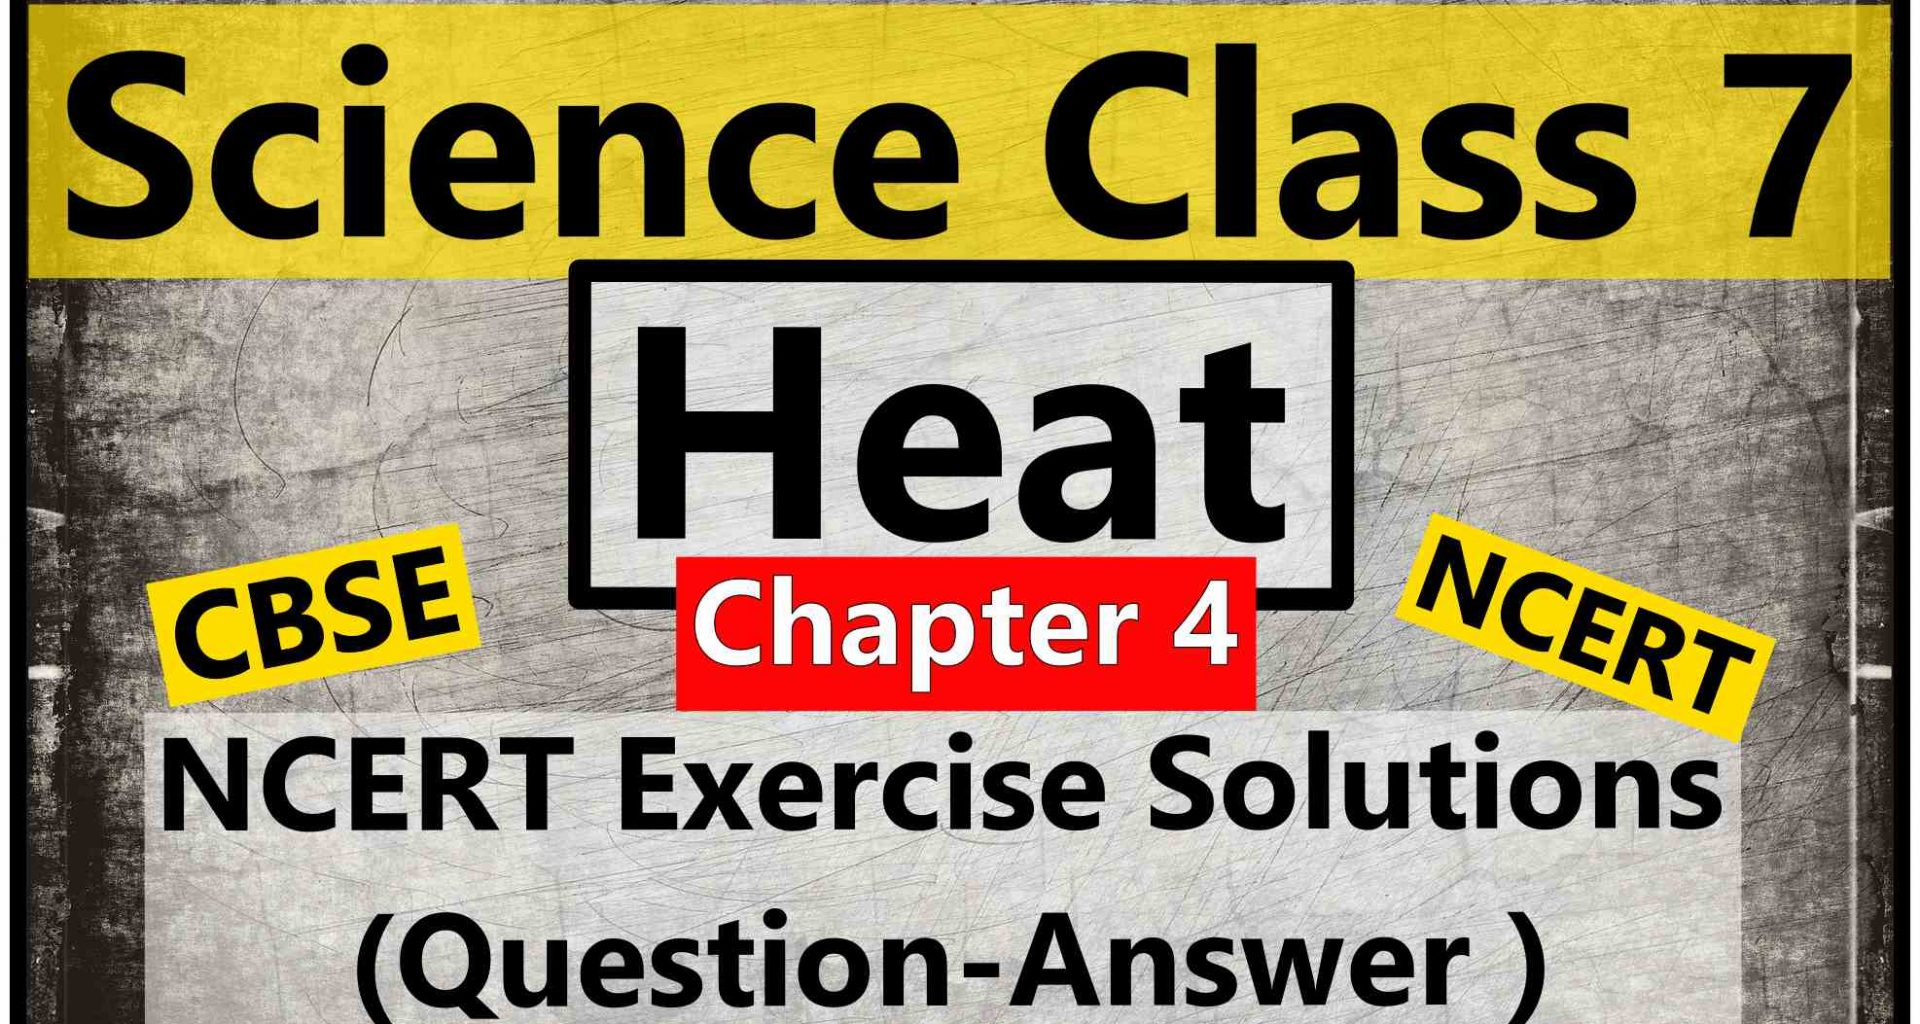 Science Class 7- Chapter 4- Heat- NCERT Exercise Solution (Question-Answer )